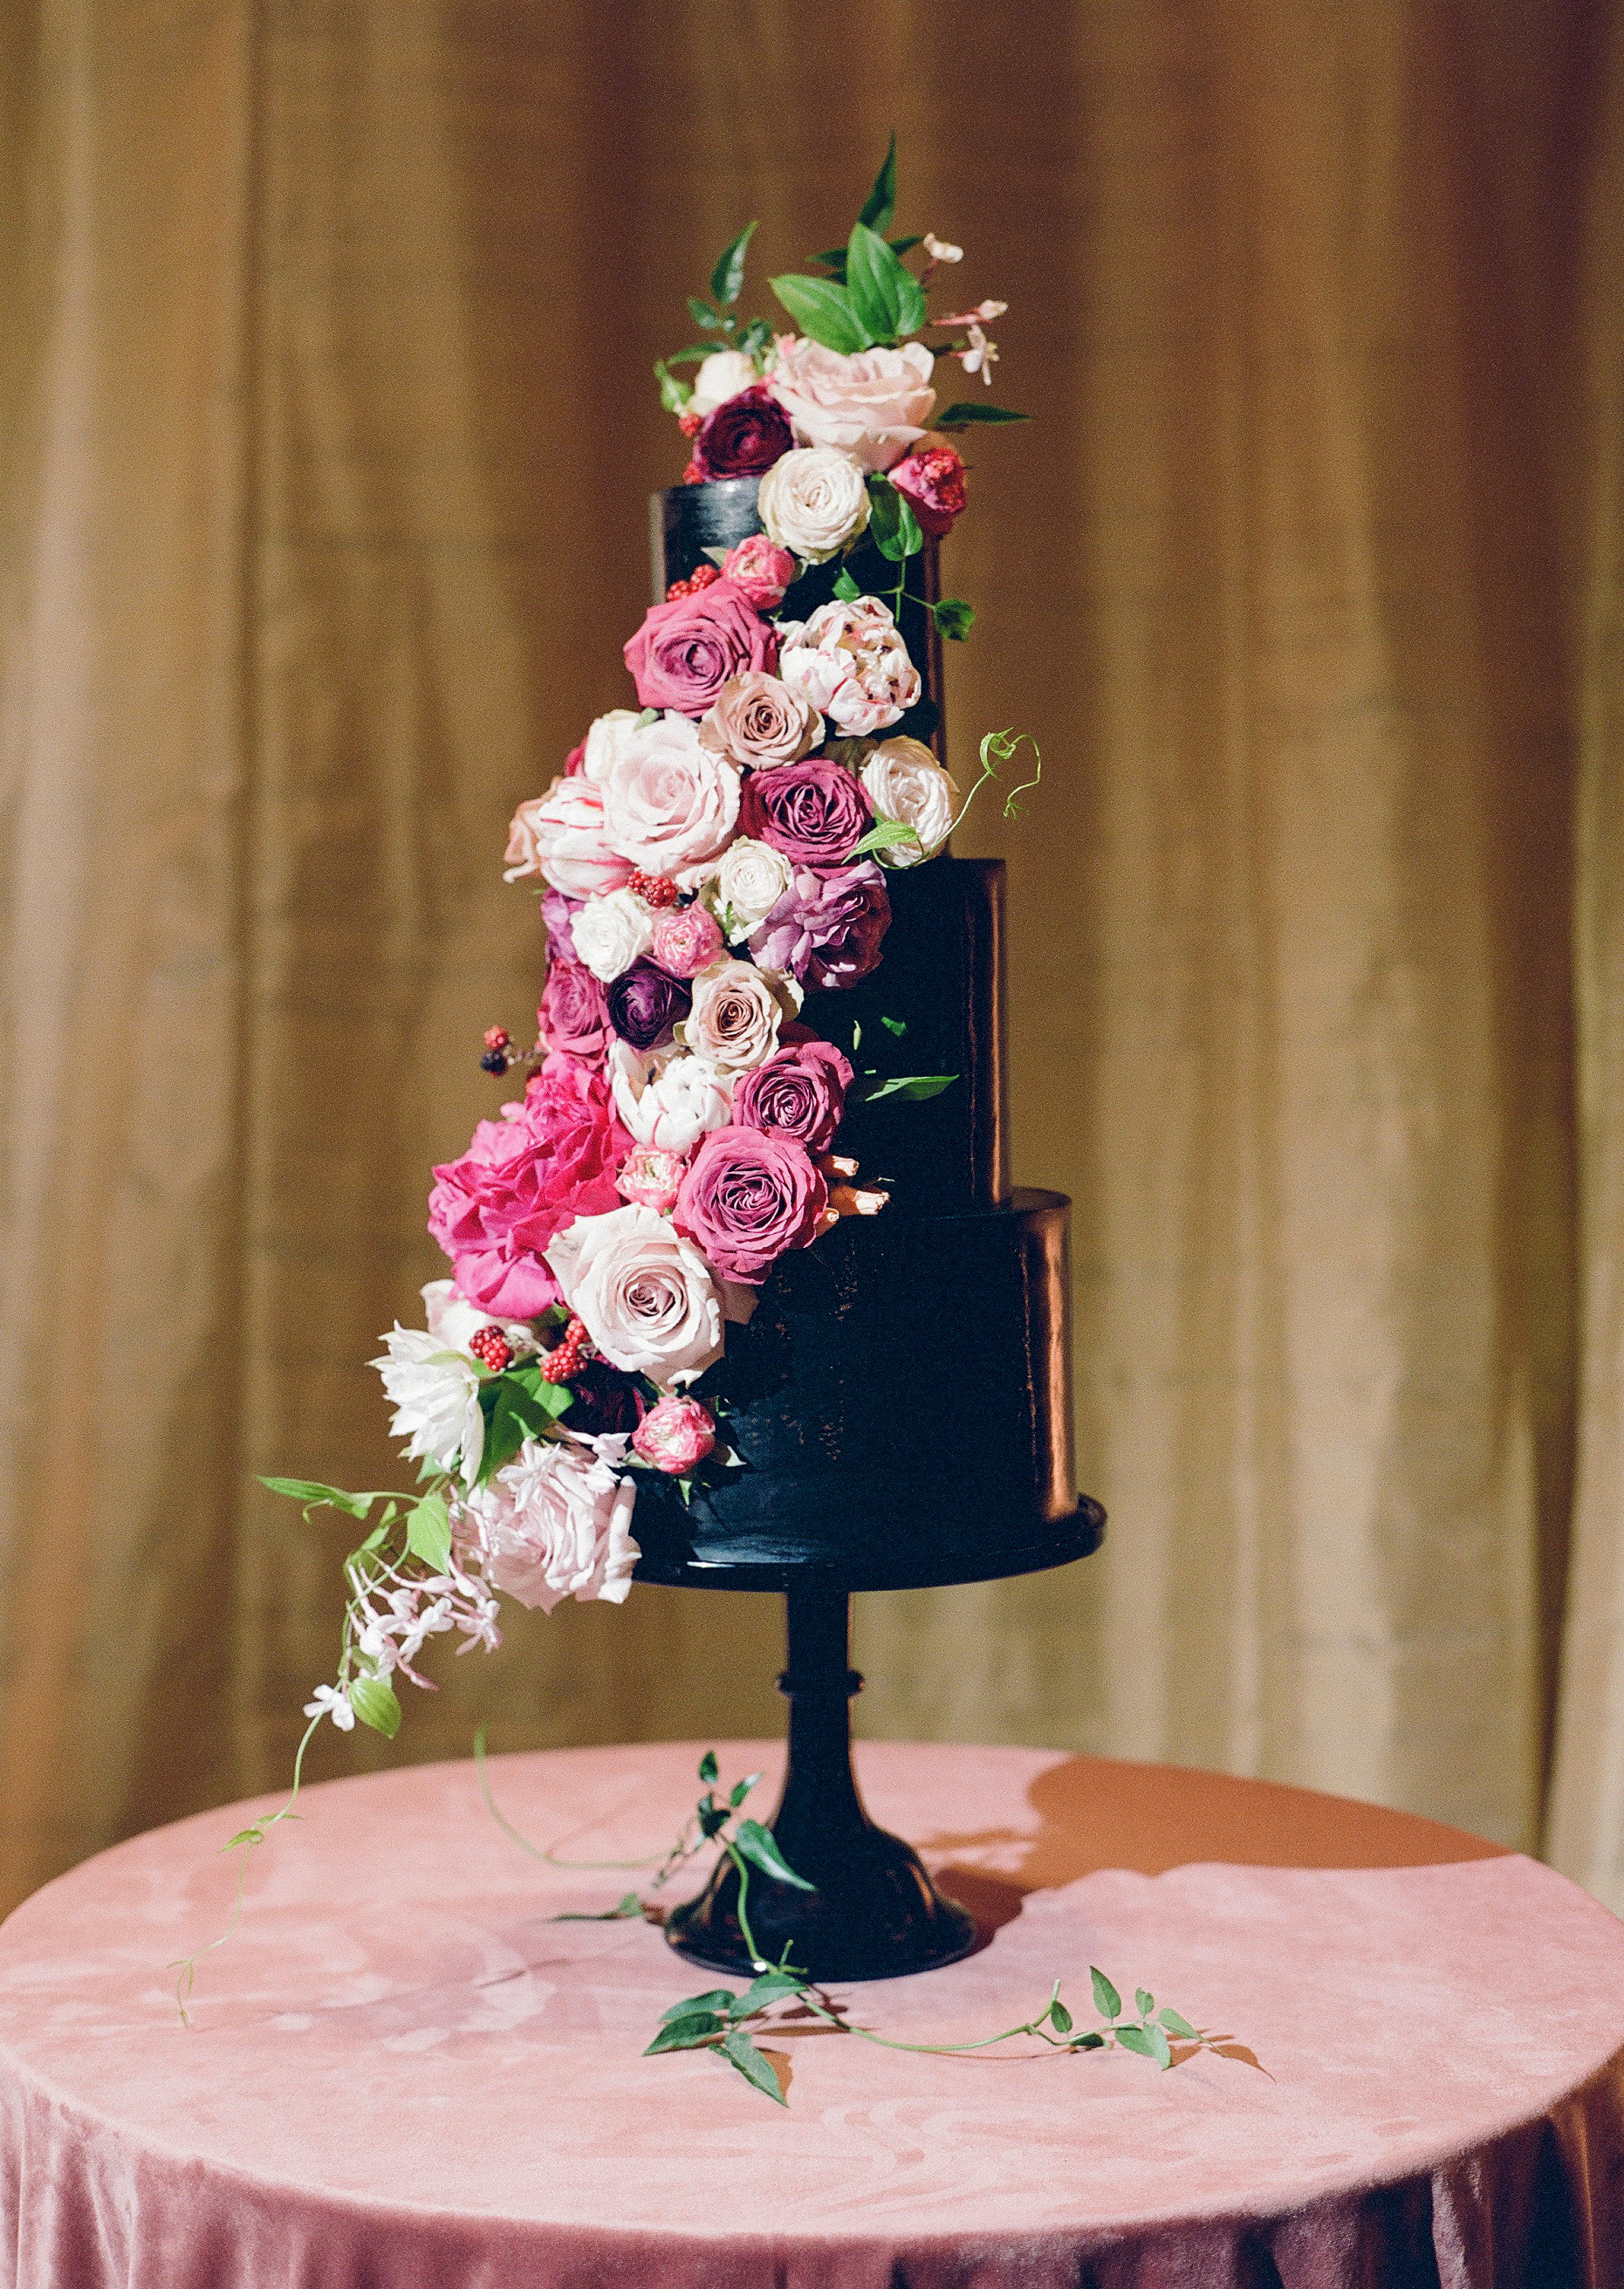 black wedding cake jose villa thewholecake